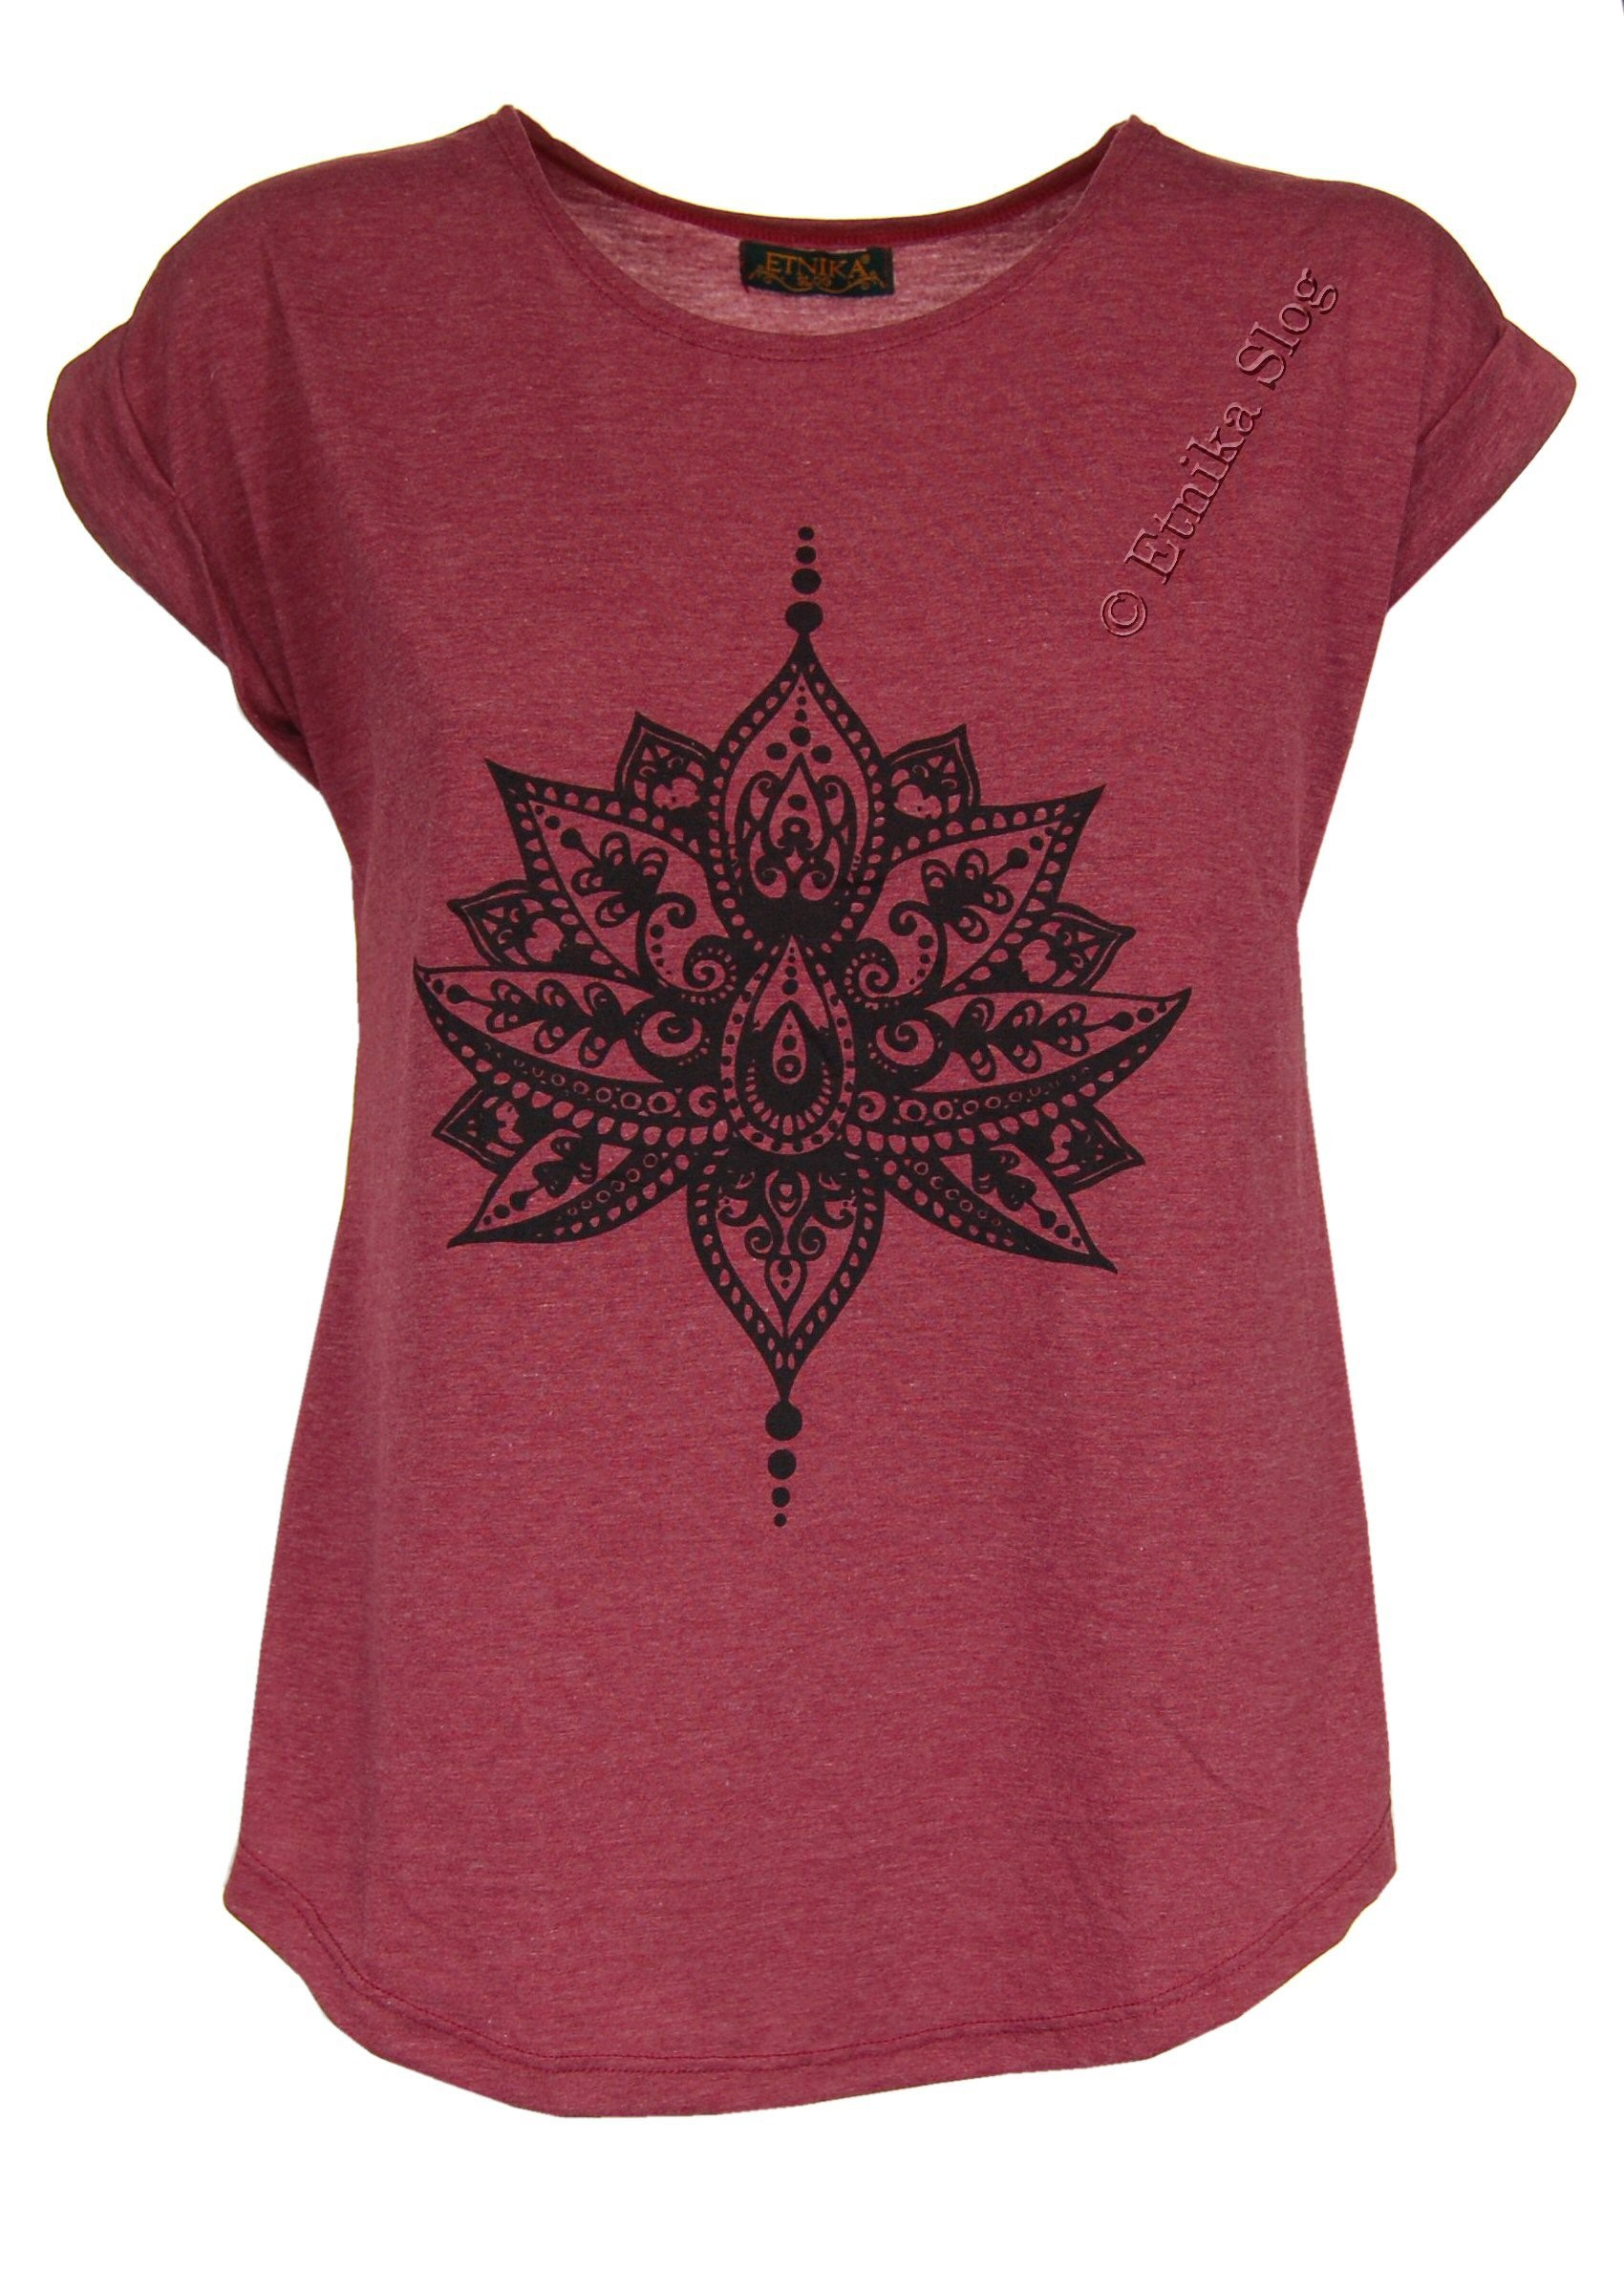 PRINTED T-SHIRTS AB-BCT08-19 - Oriente Import S.r.l.